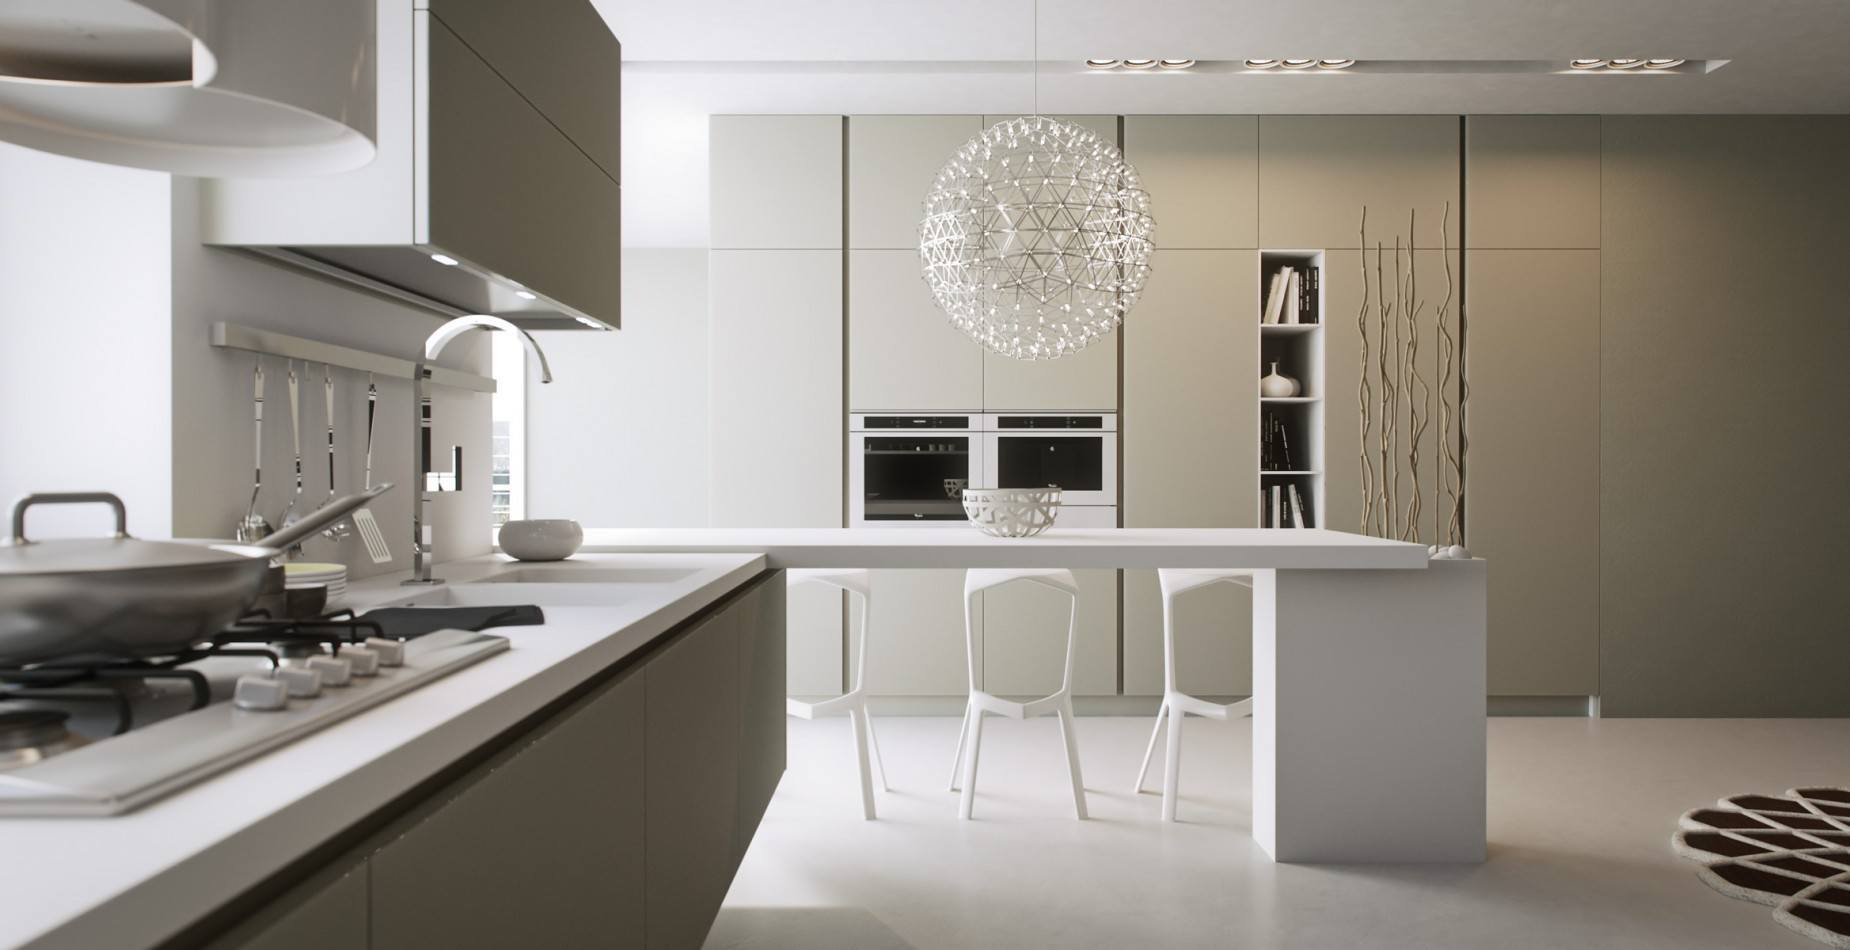 Decotips tendencias en cocinas para 2018 virlova style for Tendencias muebles